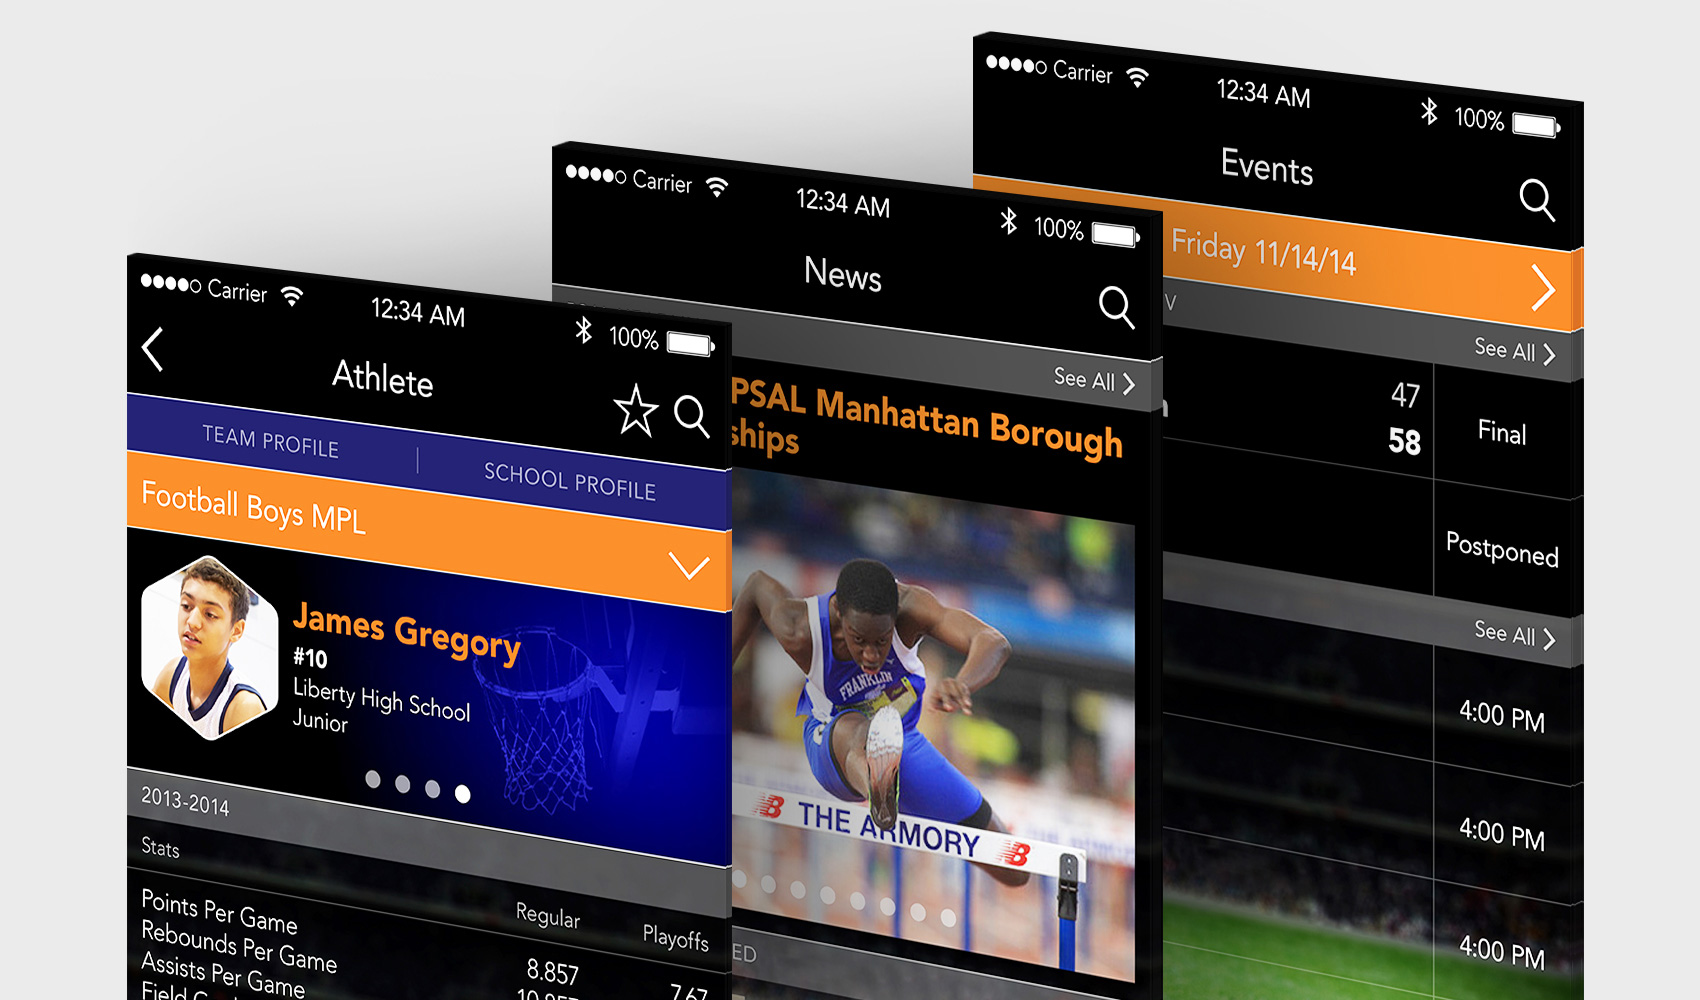 Vanguard - Mobile Application Development for the Public Schools Athletic League (PSAL) / NYC Department of Education